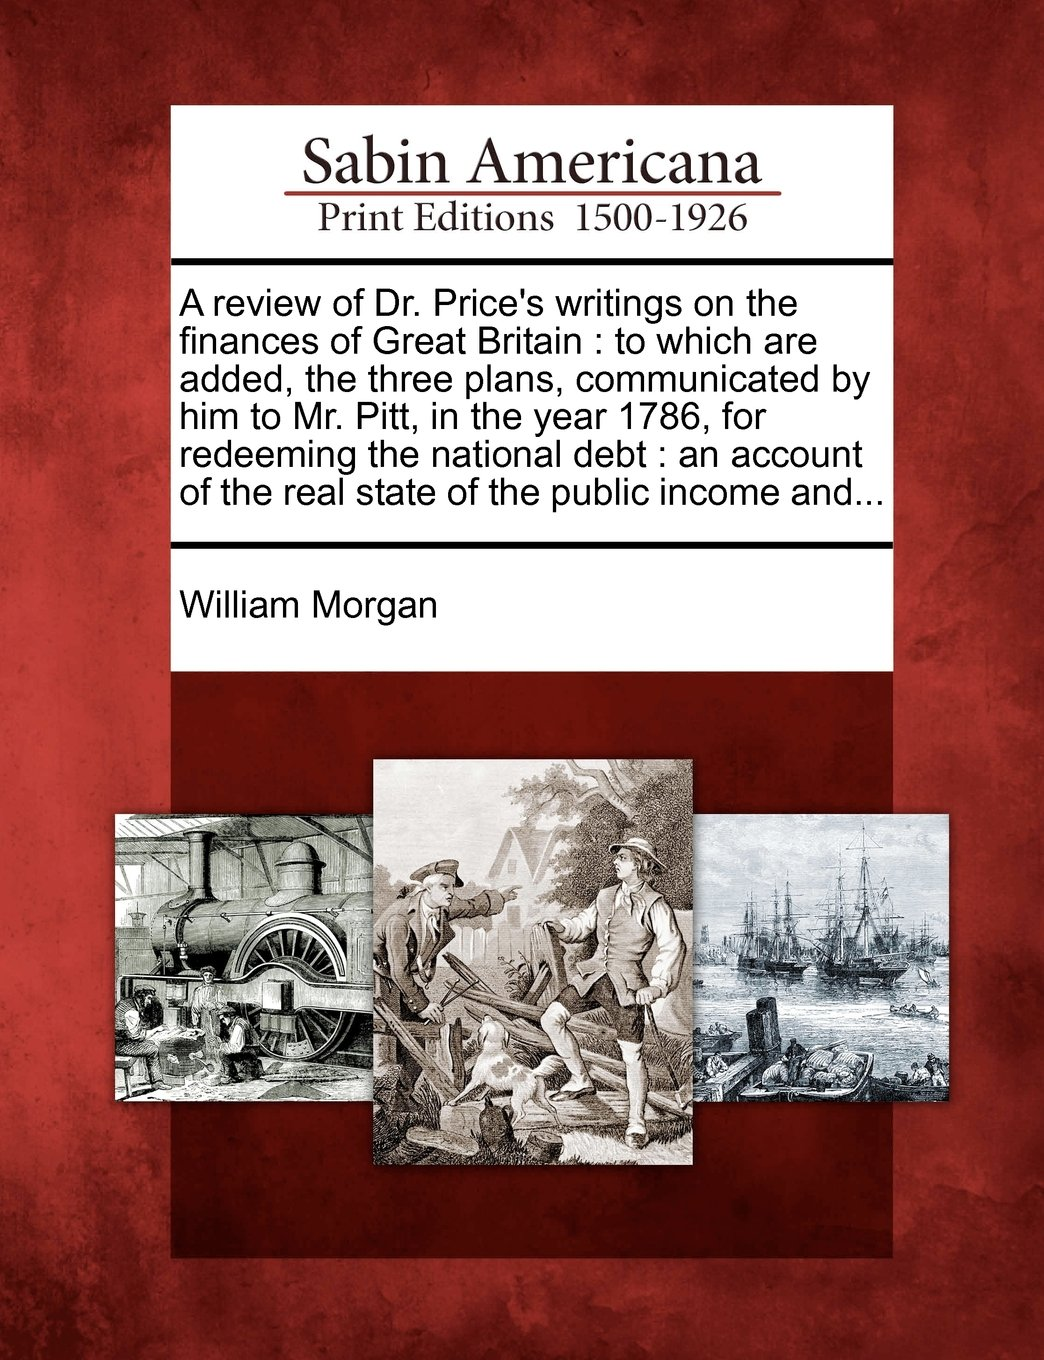 A review of Dr. Price's writings on the finances of Great Britain: to which are added, the three plans, communicated by him to Mr. Pitt, in the year ... of the real state of the public income and... ebook